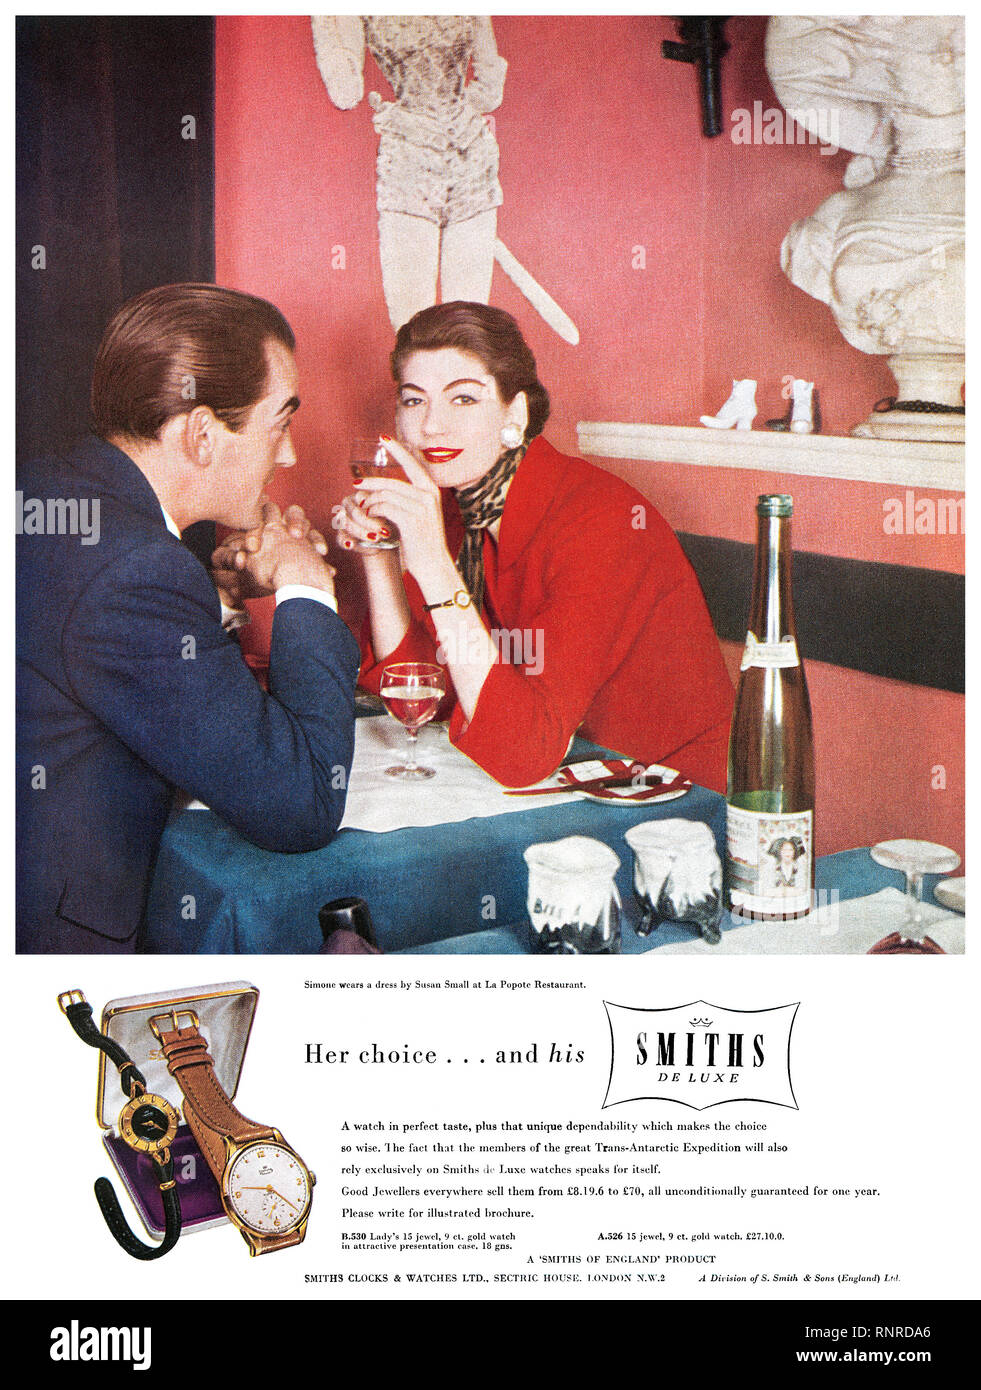 1956 British advertisement for Smiths wristwatches. - Stock Image